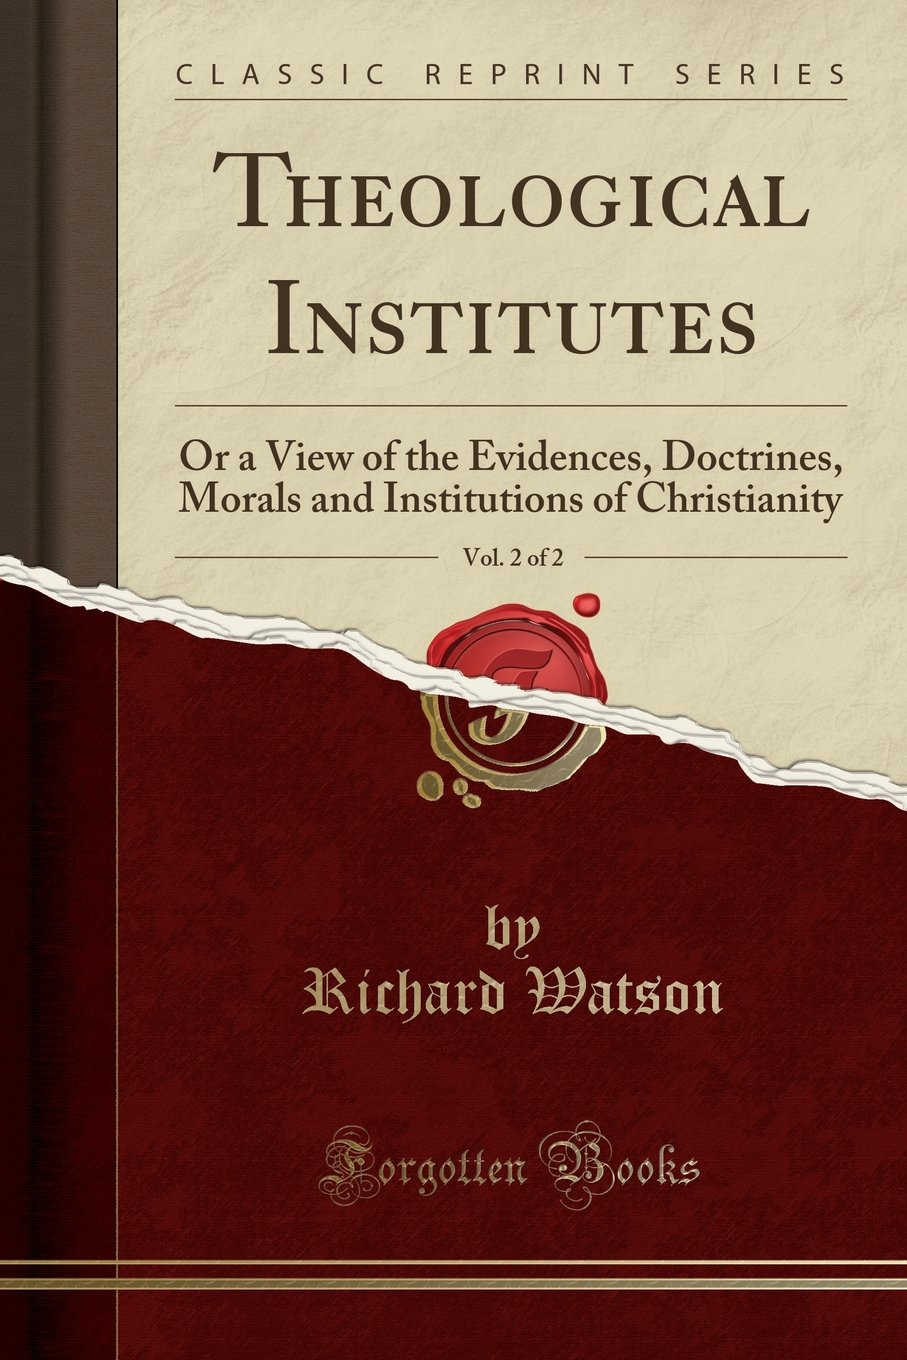 Theological Institutes, Vol. 2 of 2: Or a View of the Evidences, Doctrines, Morals and Institutions of Christianity (Classic Reprint) PDF